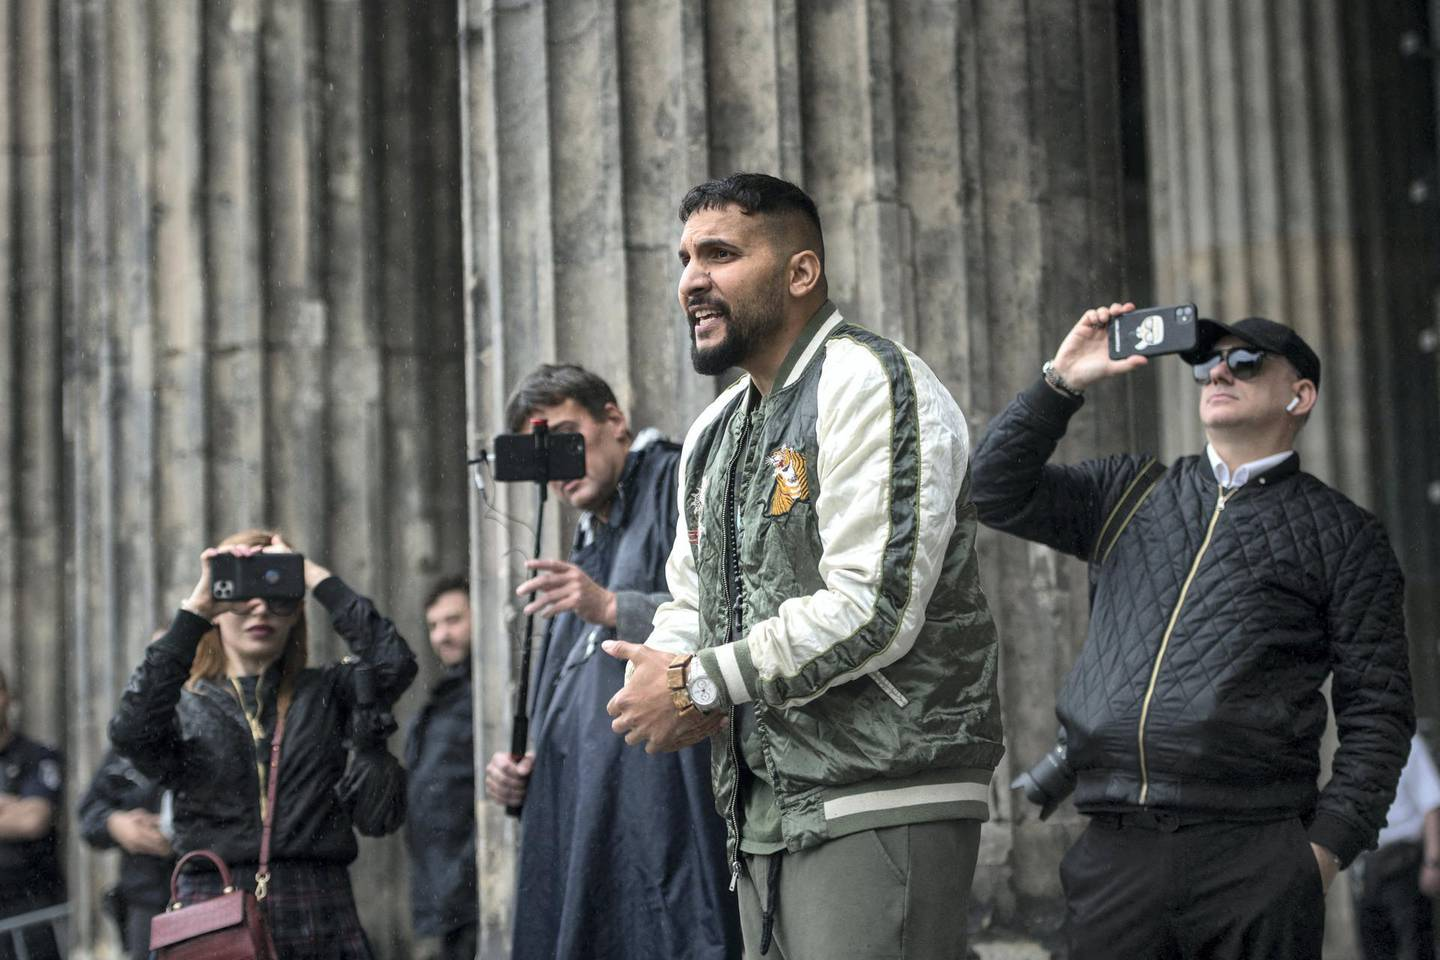 German vegan cookbook author and conspiracy theorist Attila Hildmann speaks during a protest against restrictions implemented in order to limit the spread of the novel coronavirus / COVID-19 pandemic  in front of Altes Museum in Berlin, on June 20, 2020. (Photo by Stefanie LOOS / AFP)